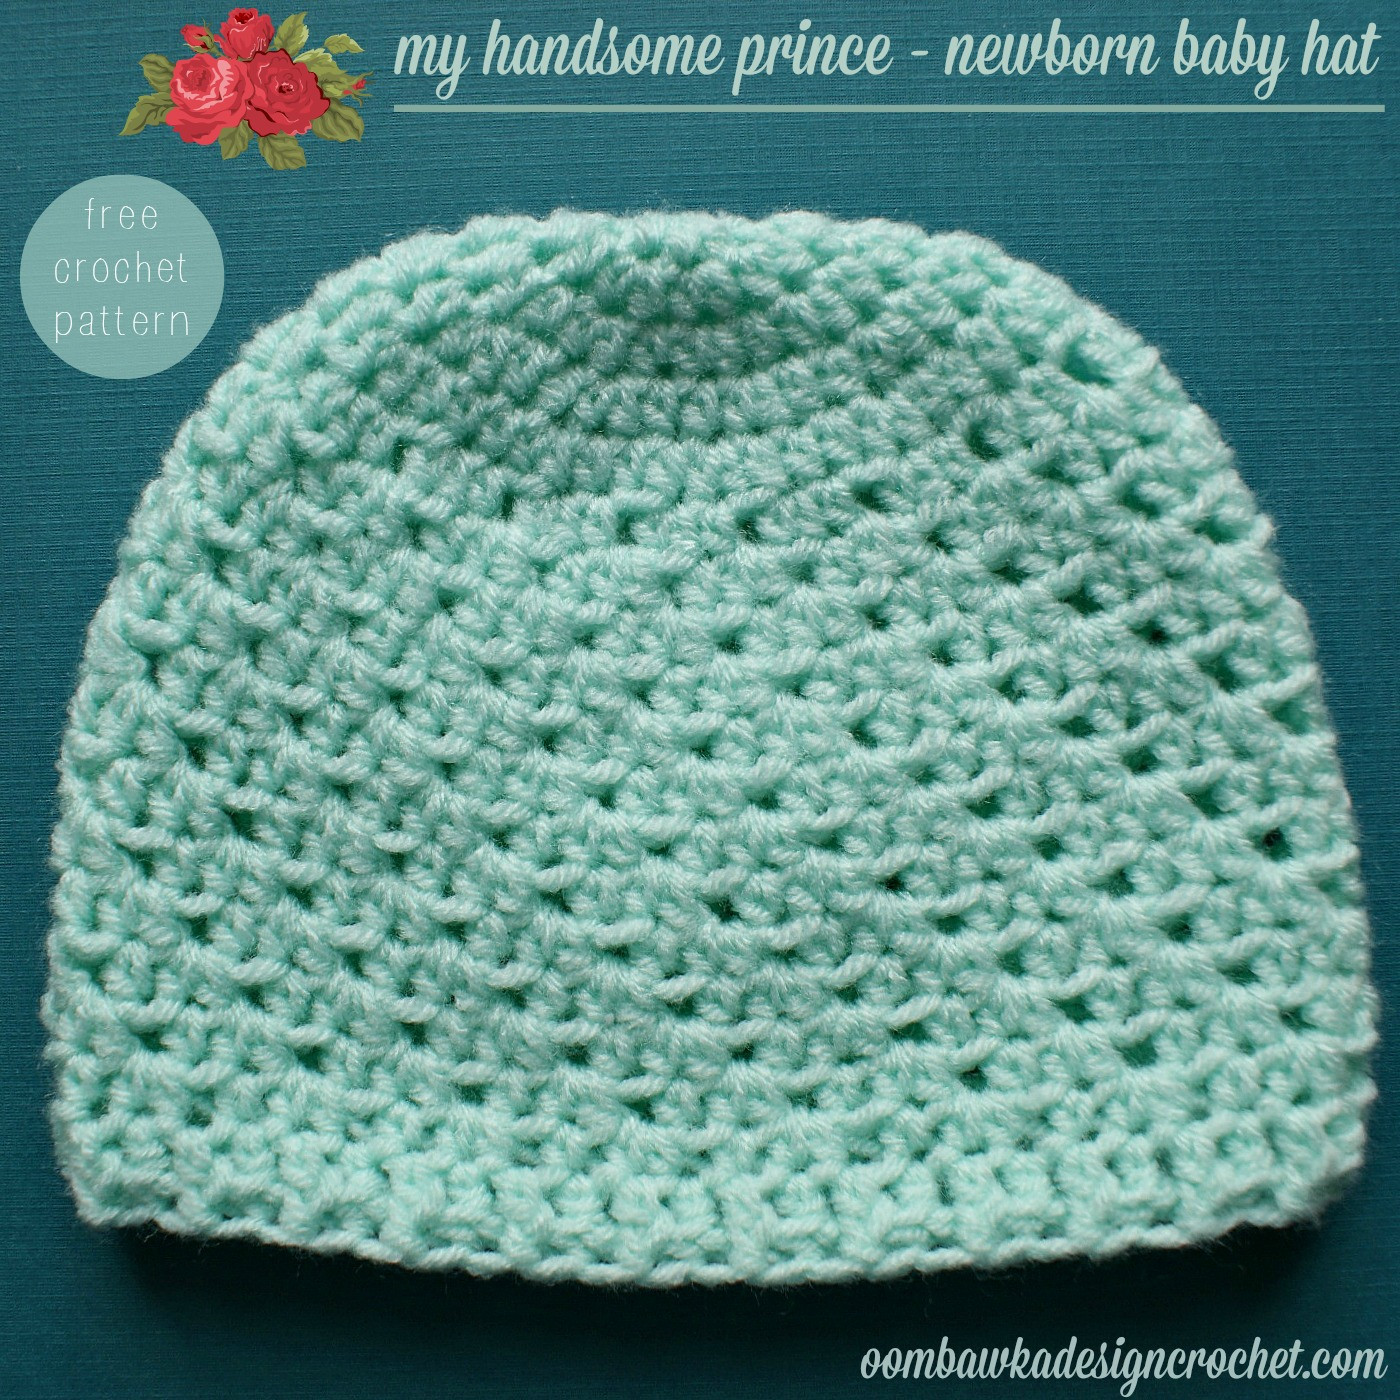 Newborn Crochet Patterns Lovely My Handsome Prince Newborn Baby Hat Pattern • Oombawka Of Incredible 41 Ideas Newborn Crochet Patterns